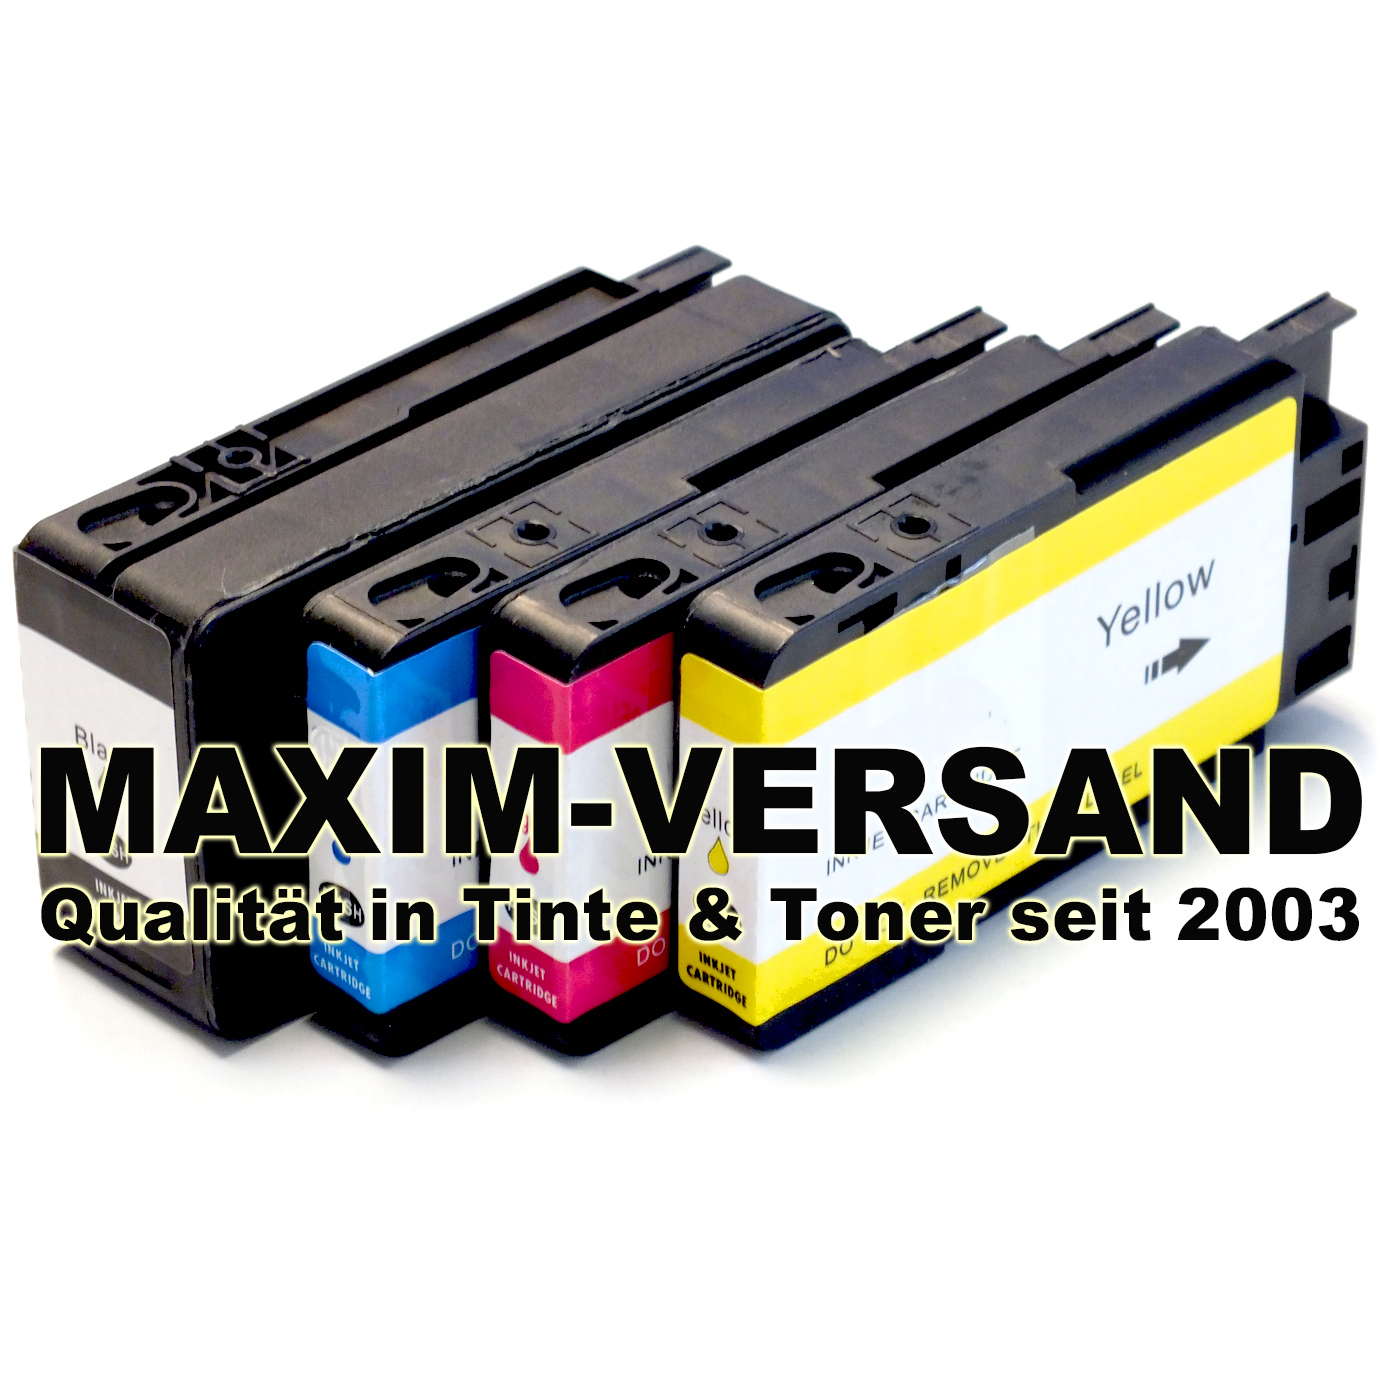 HP 953 XL Black, Cyan, Yellow, Magenta - kompatibel - alle Farben (4er Set)